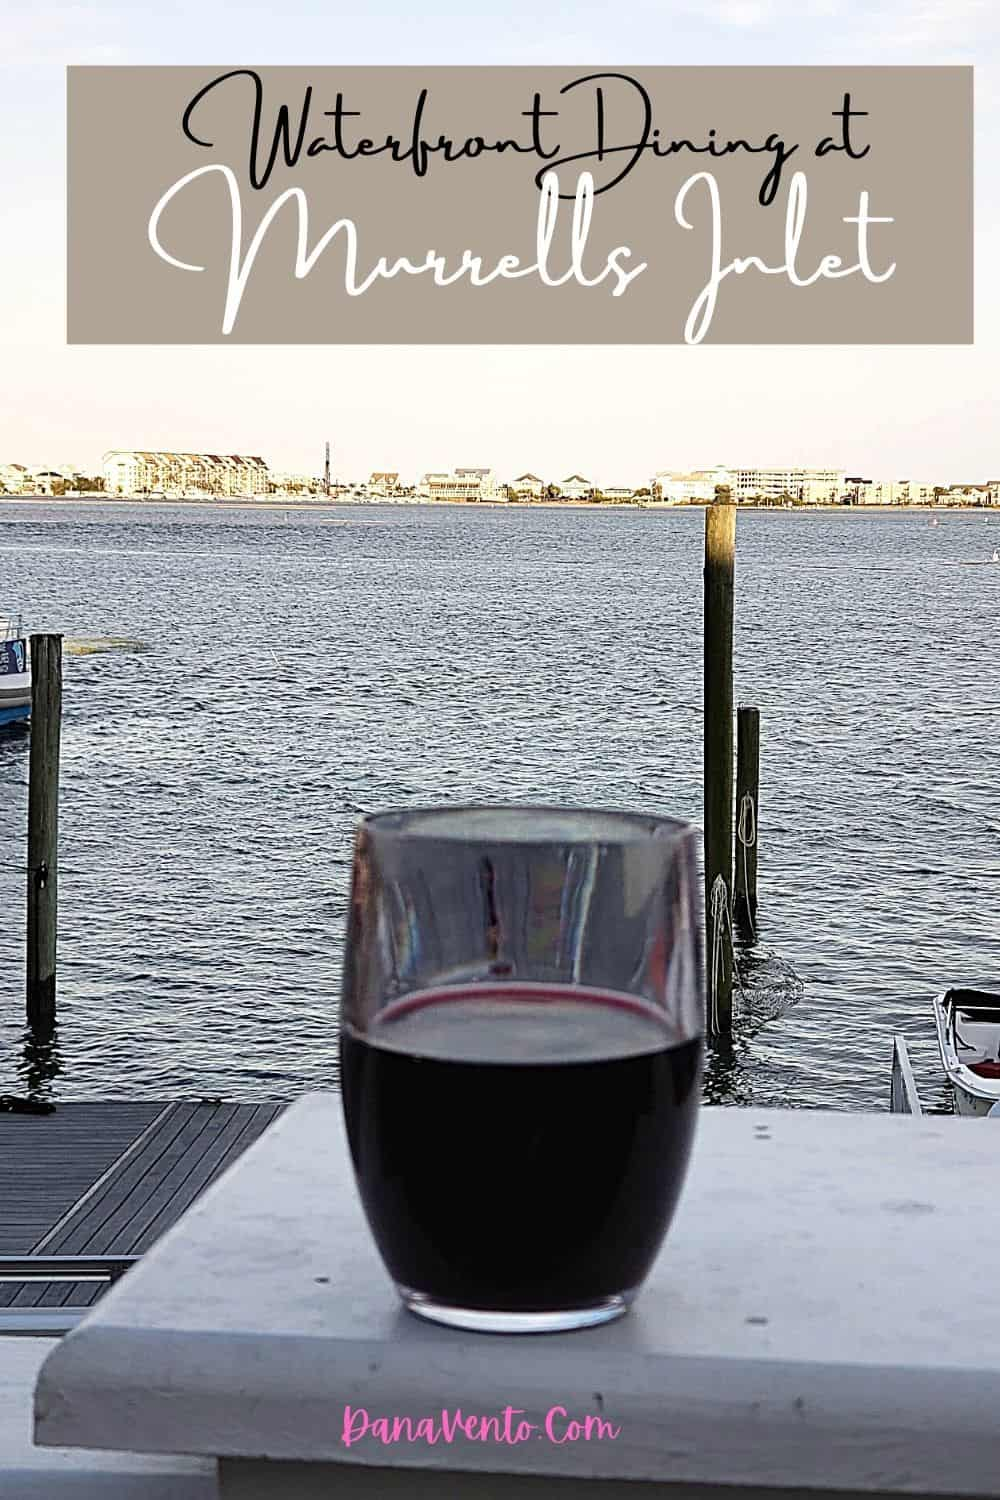 waterfront dining at Murrells Inlet wine glass time